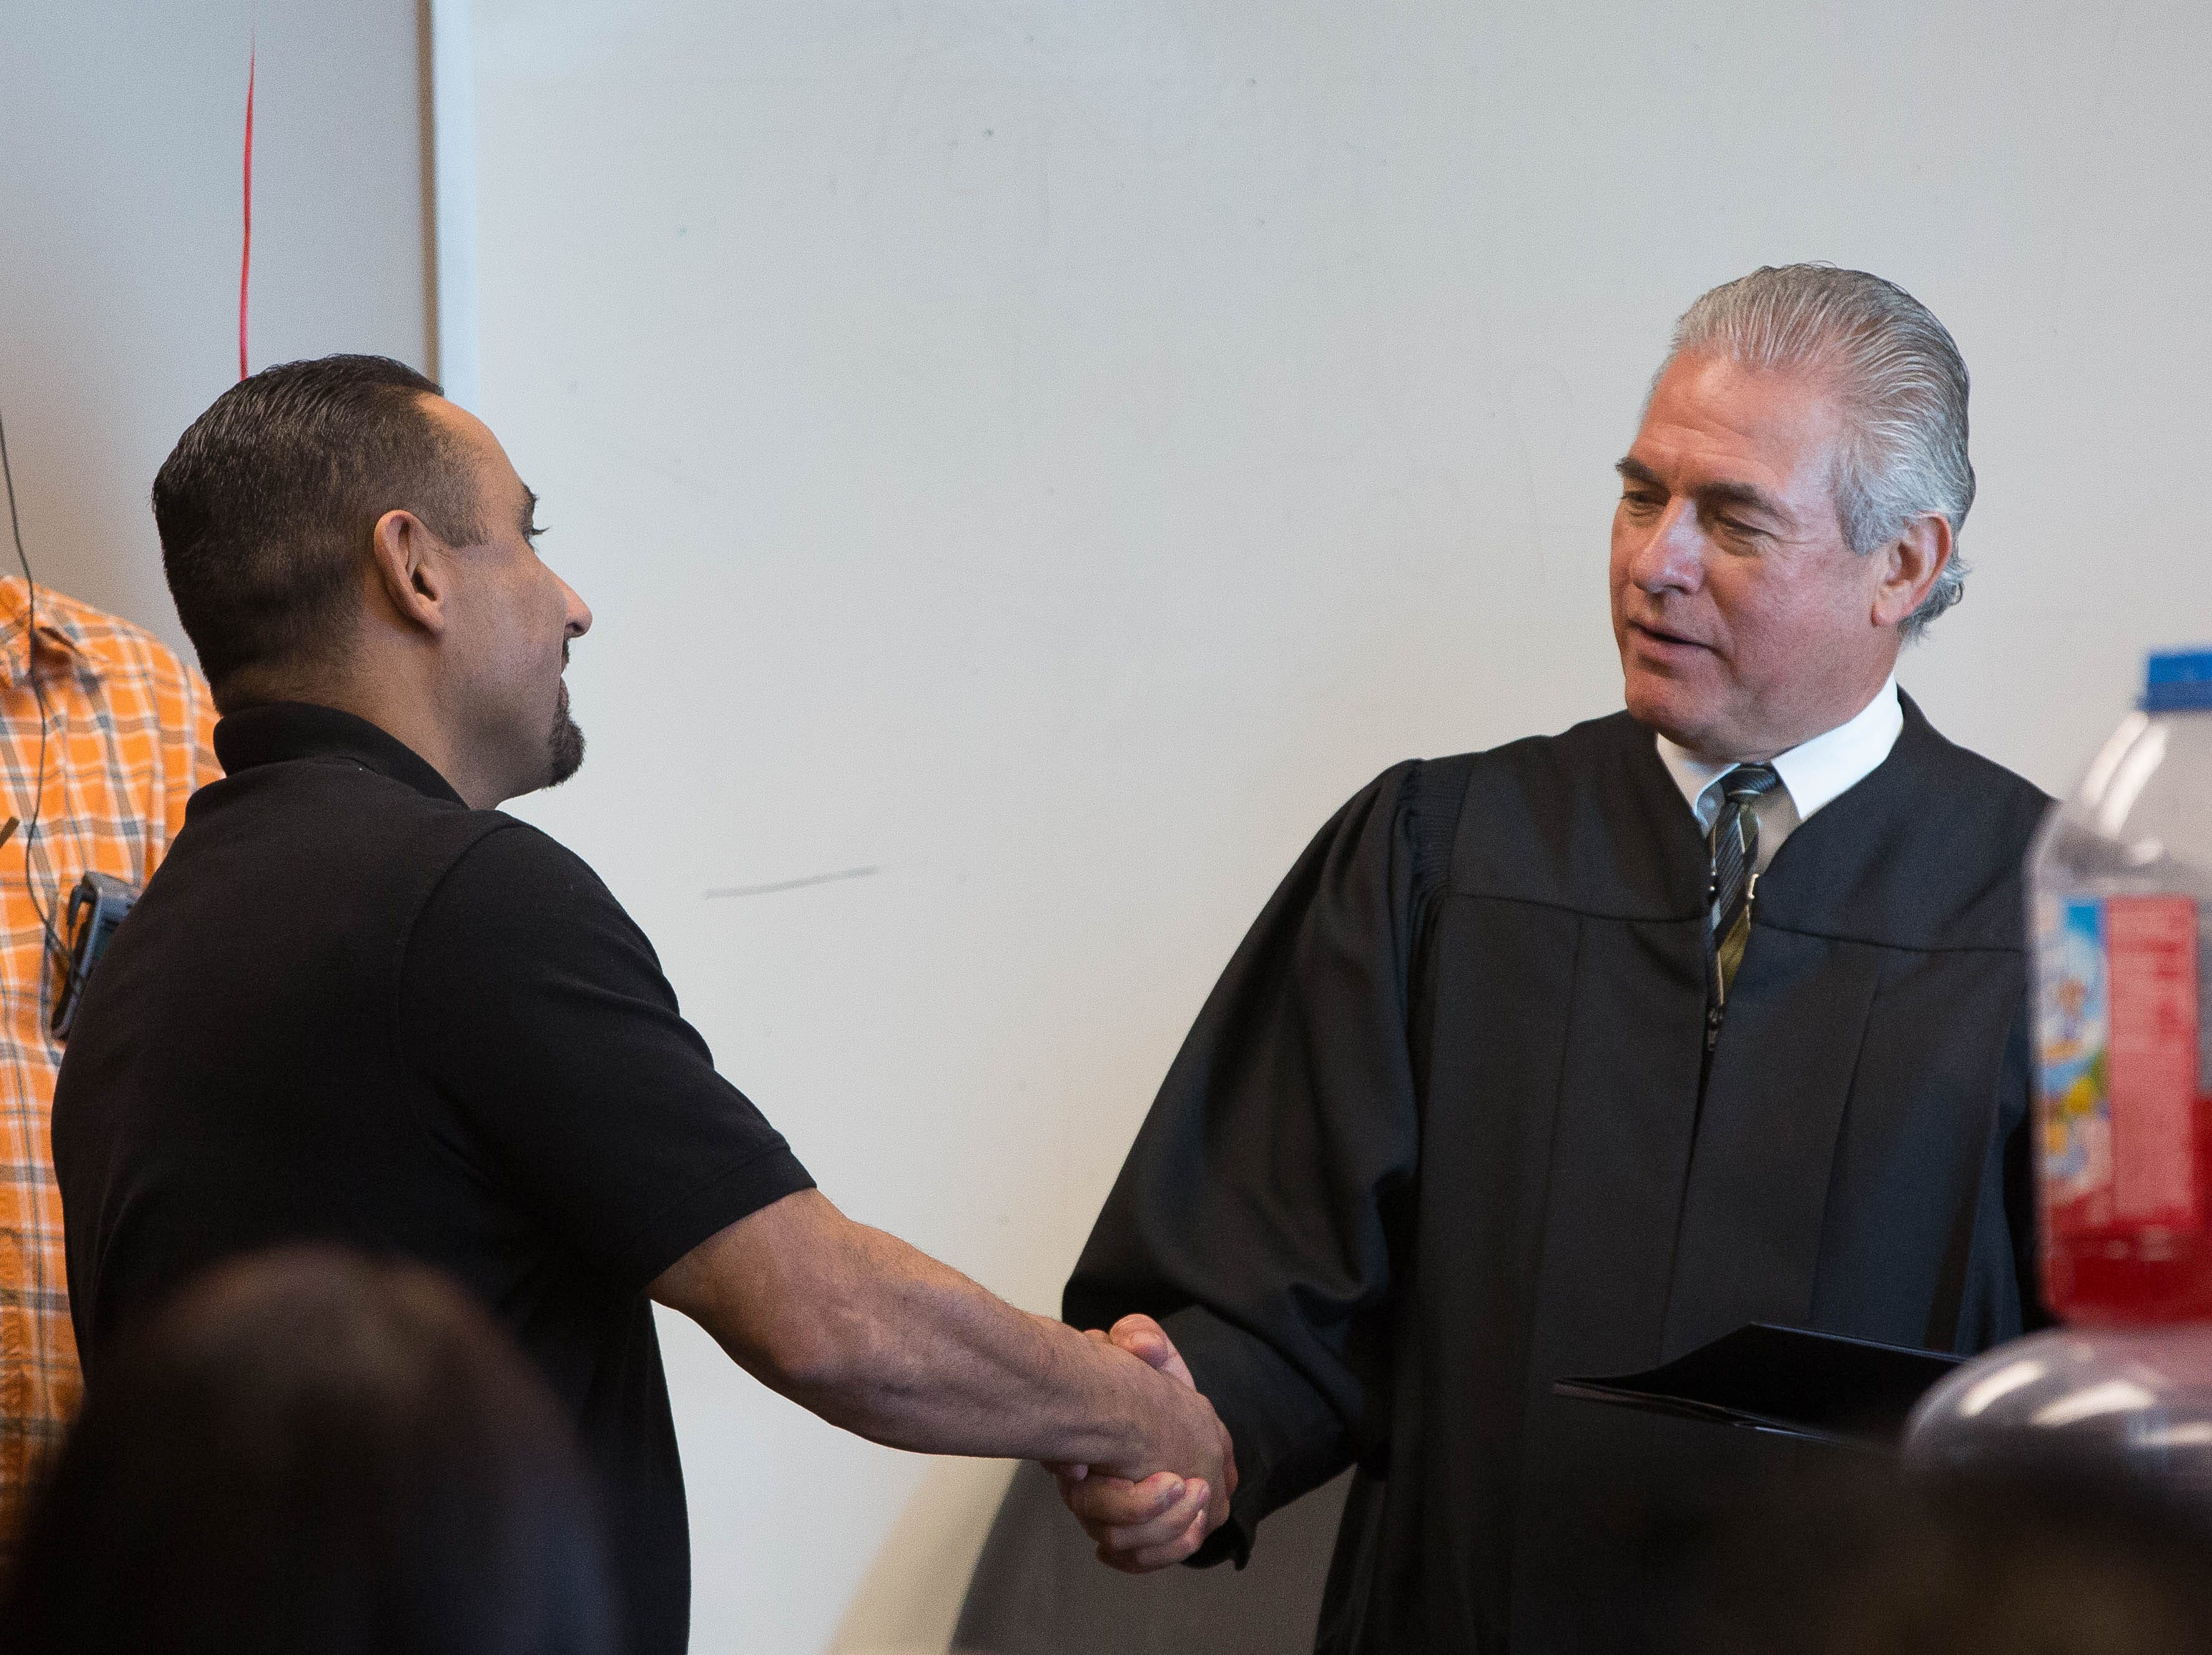 Paul Contreras, a participant in the DWI Drug Court program, shakes hands with Judge Joel Cano, one of two judges presiding over DWI Drug Court, as Contreras graduates from the program, Monday October 22, 2018 at  Doña Ana Magistrate Court.